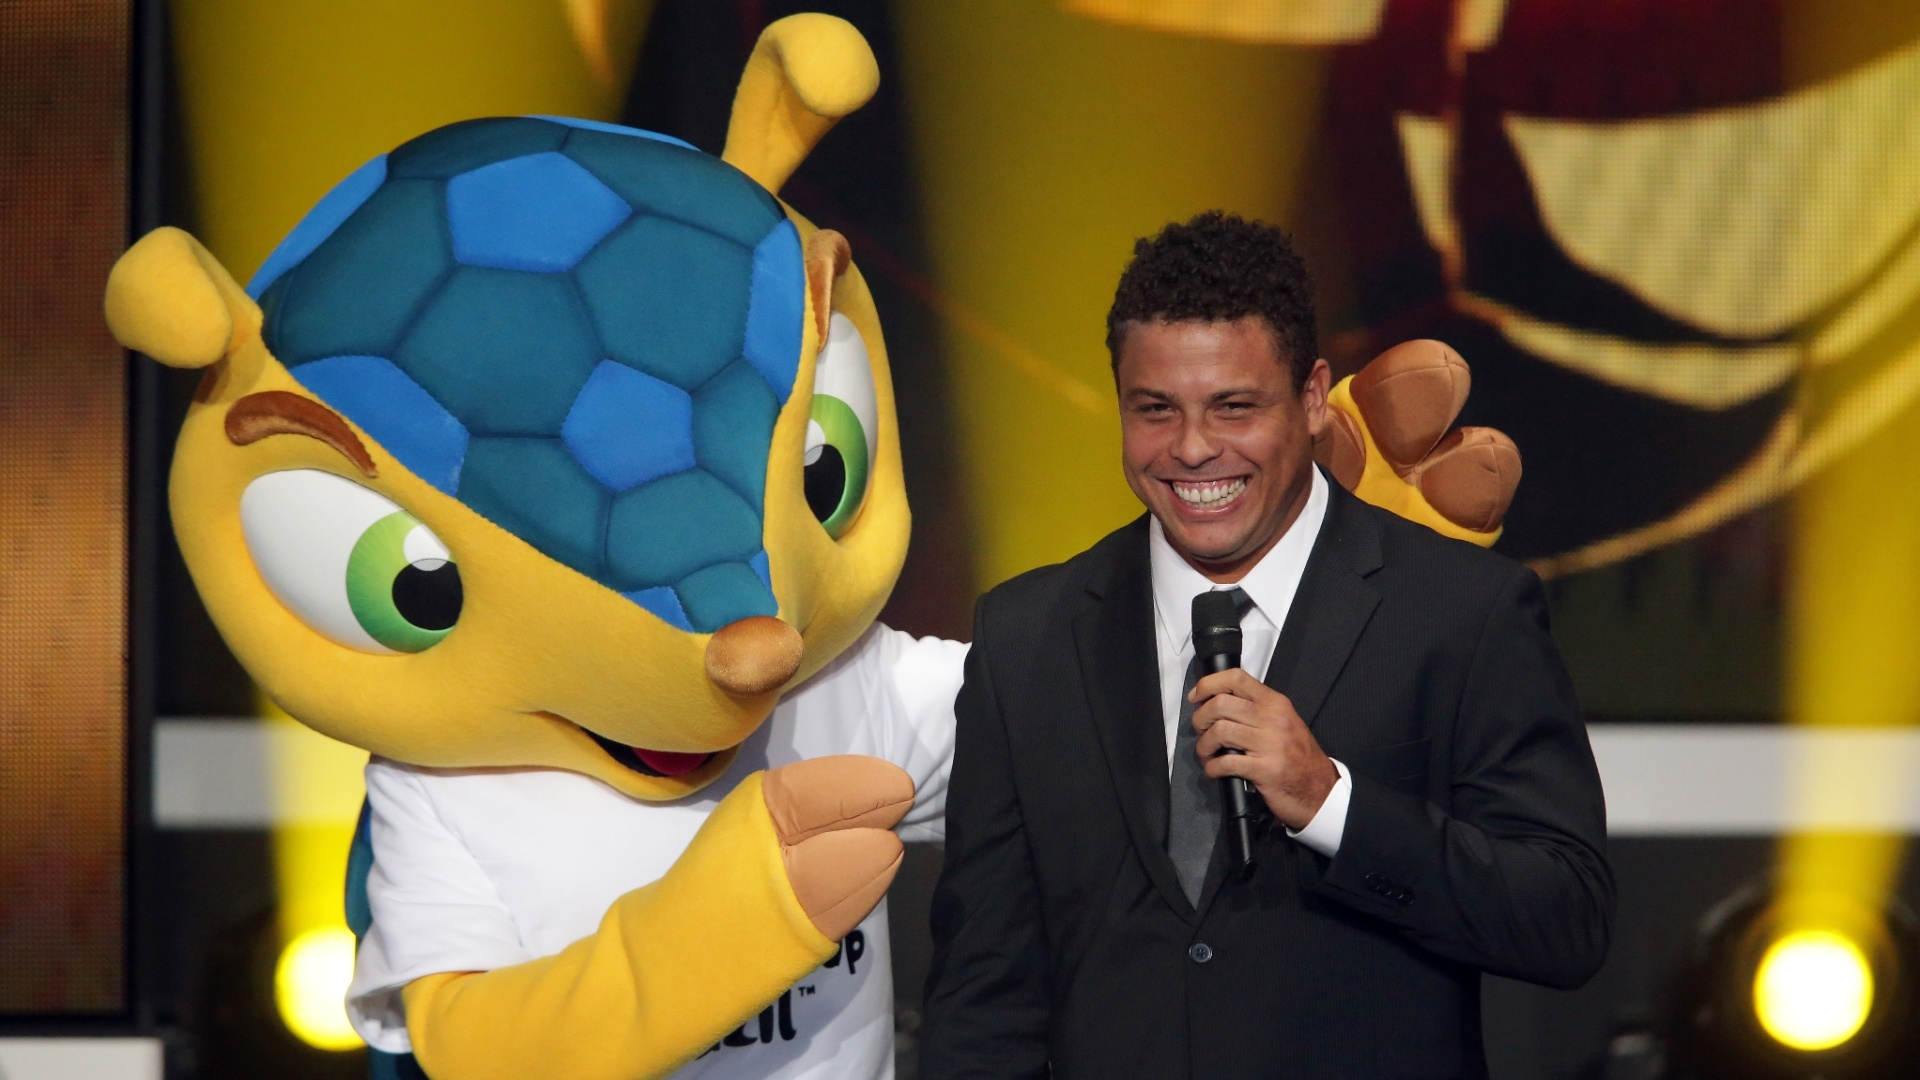 07.jan.2013- Ao lado do mascote da Copa de 2014, Ronaldo discursa e fala sobre o evento no Brasil na cerimnia de premiao da Bola de Ouro da Fifa 2012